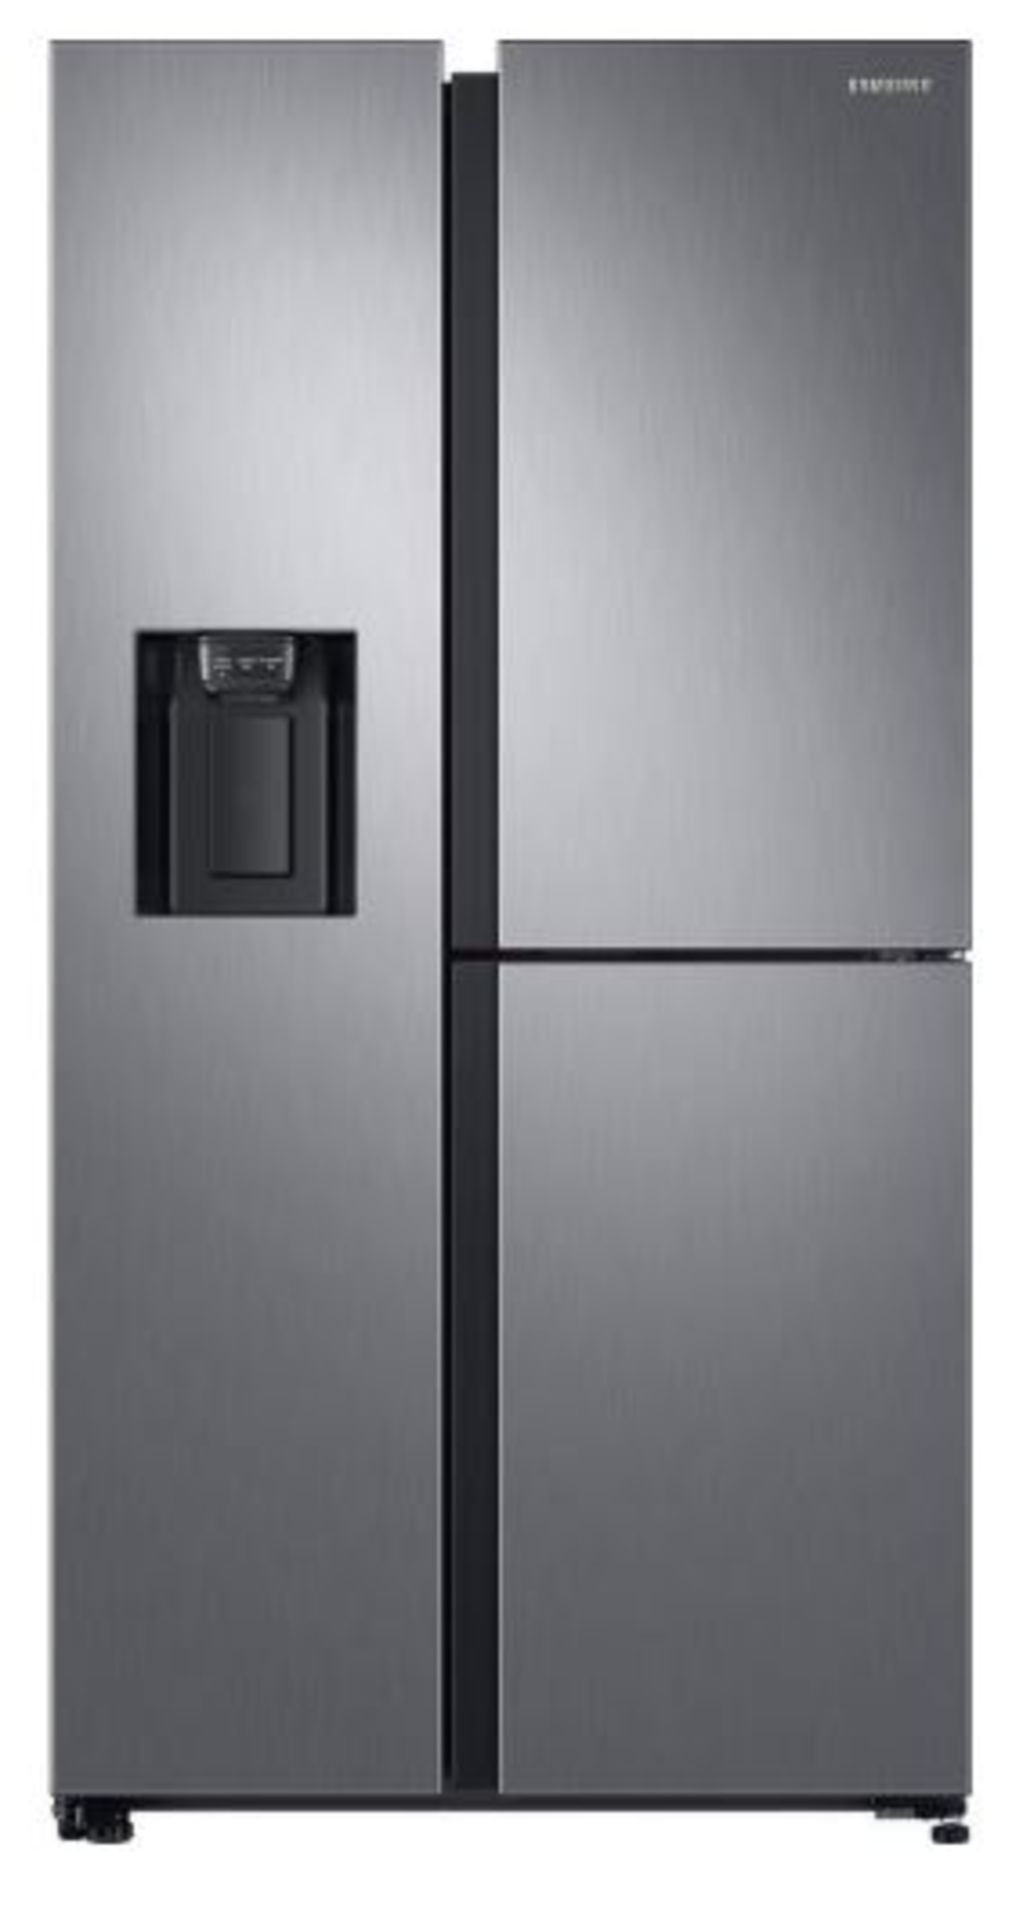 Pallet of 1 Samsung Water & Ice Fridge freezer. Latest selling price £1,769.99*